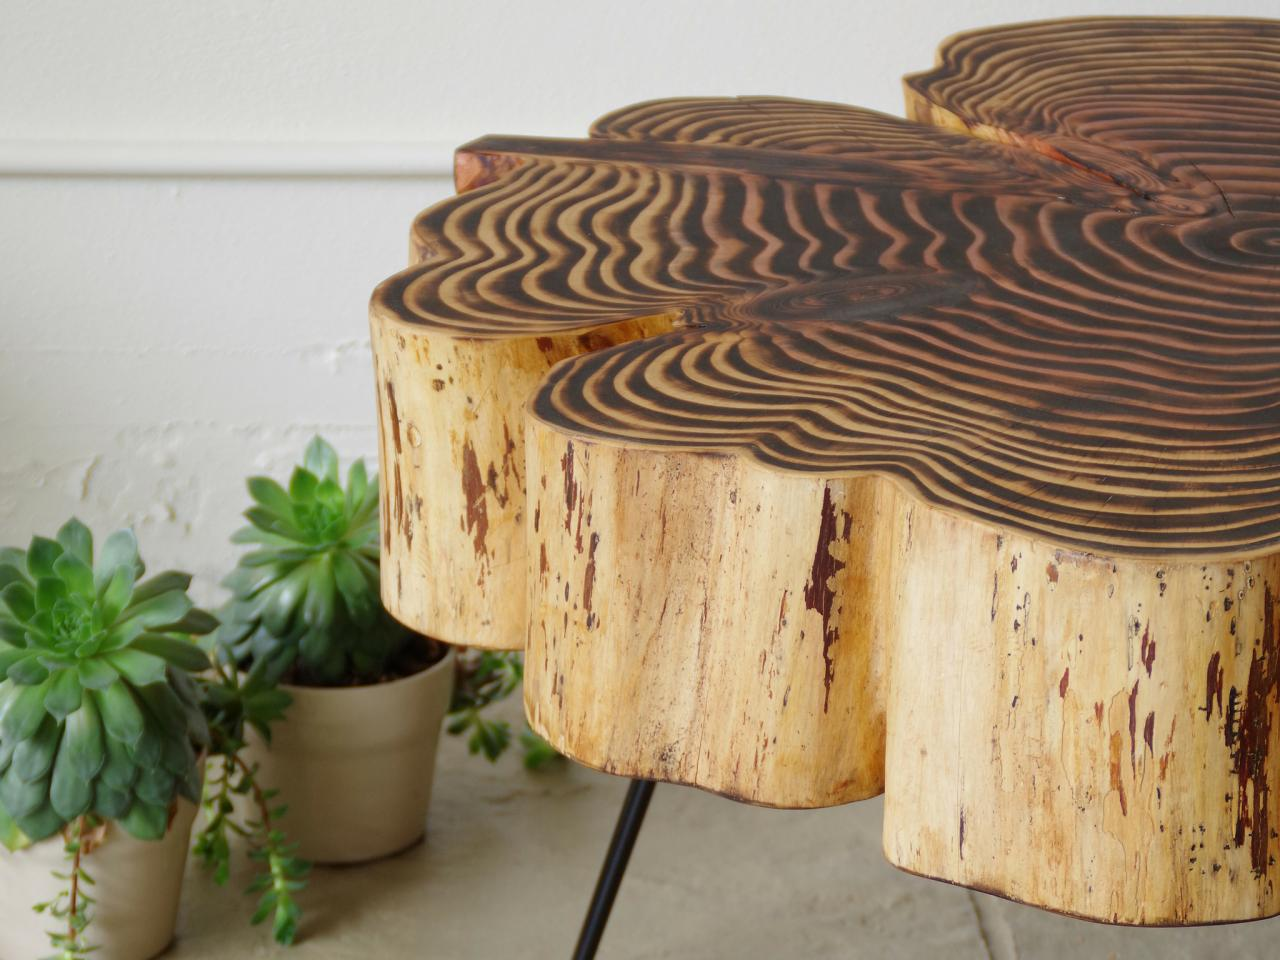 Irregular wood table with black lines